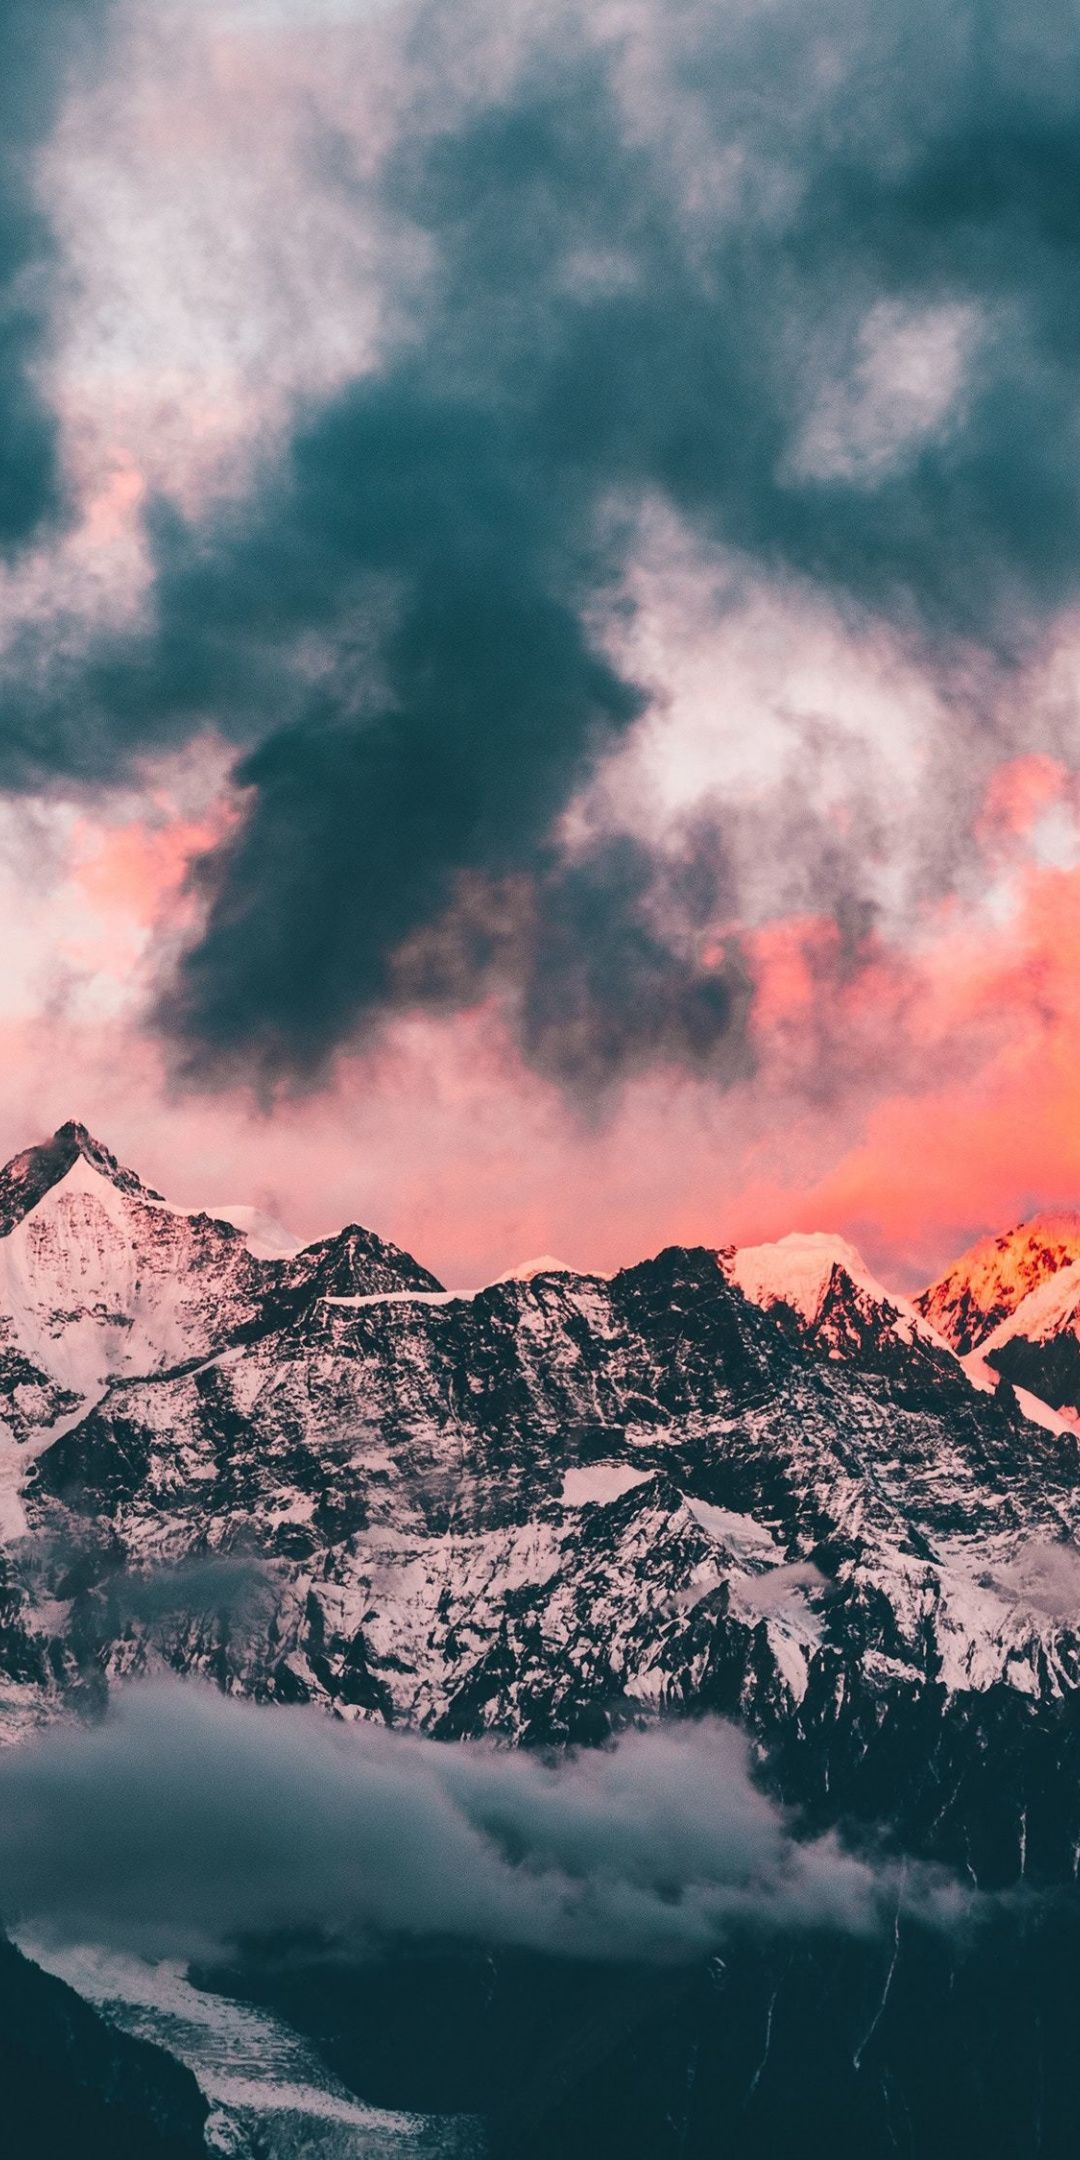 Clouds Sunset Glowing Peaks Mountains 1080x2160 Wallpaper Landscape Wallpaper Ipad Air Wallpaper Ipad Mini Wallpaper